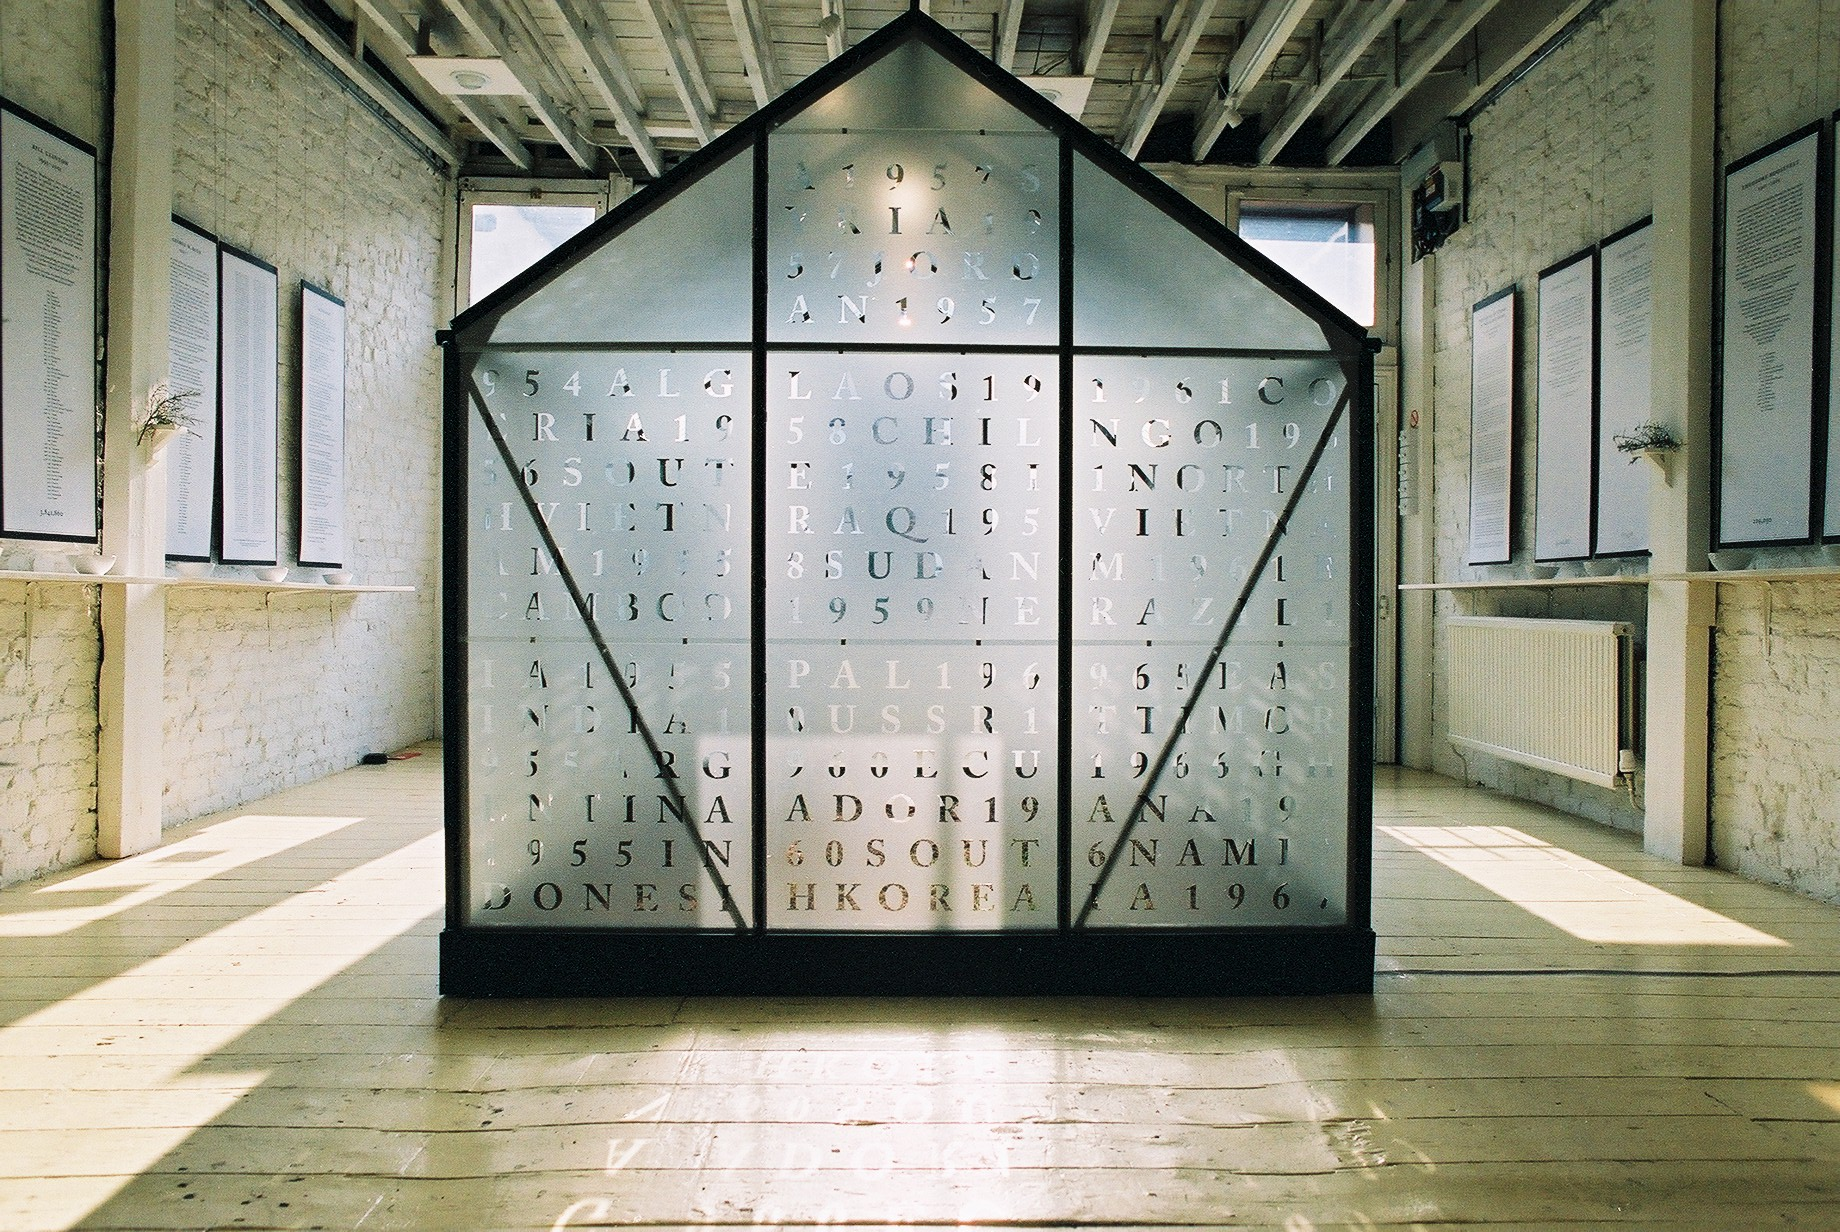 Installation-at-96-Gillespie-Gallery-London-The-Sound-of-Stones-in-the-glasshouse-2006.-Aluminium-glass-soil-